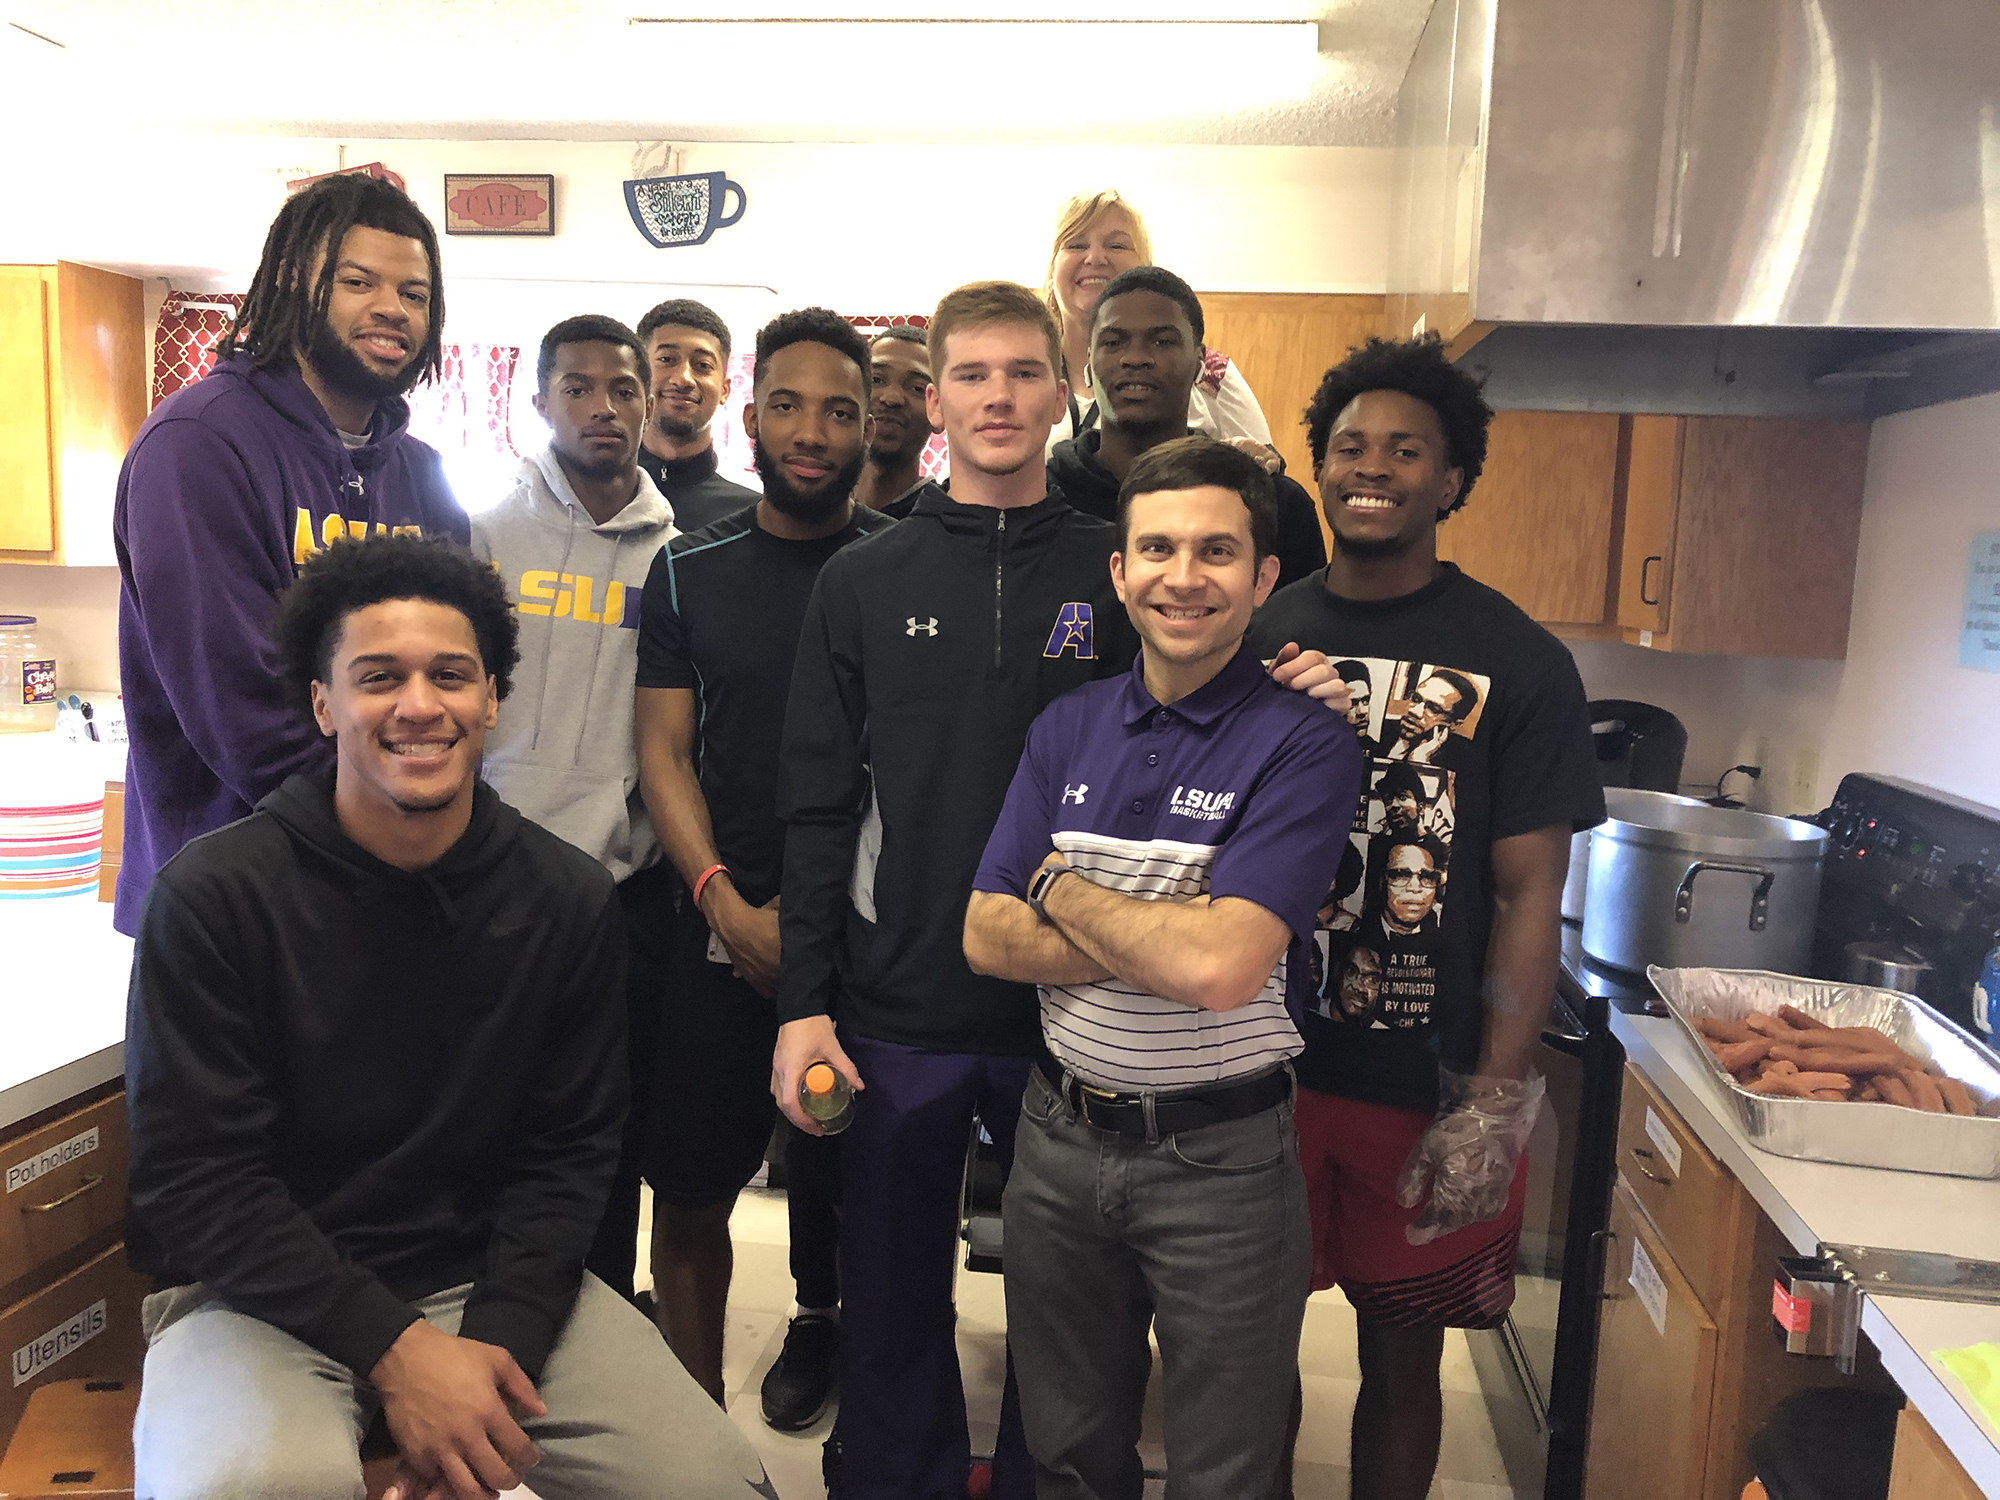 Coach Larry and the LSUA Basketball team served lunch at the LSUA Catholic Student Center recently.